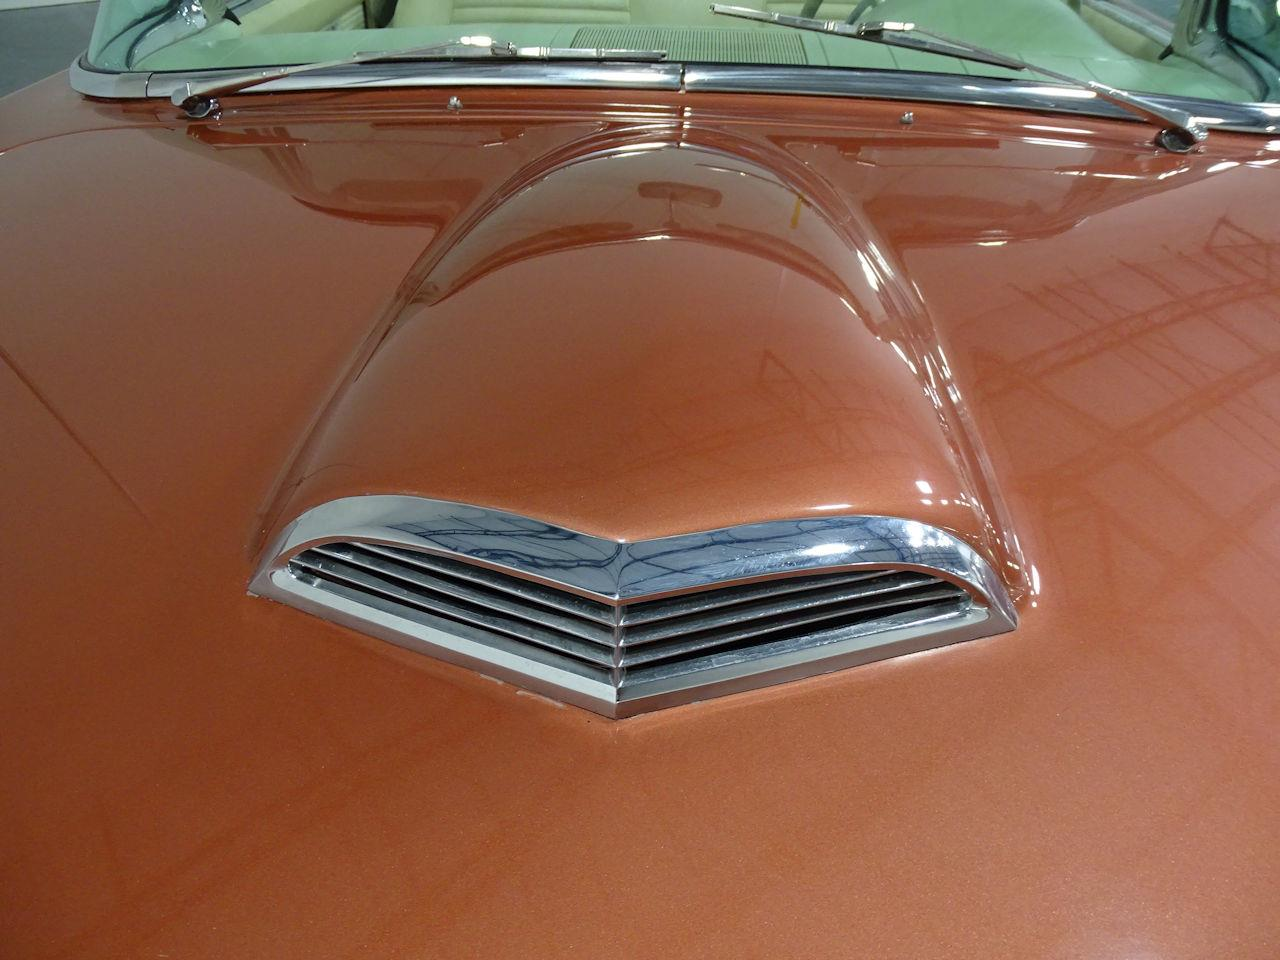 Large Picture of 1957 Ford Thunderbird located in Texas - $55,000.00 Offered by Gateway Classic Cars - Houston - LUKB